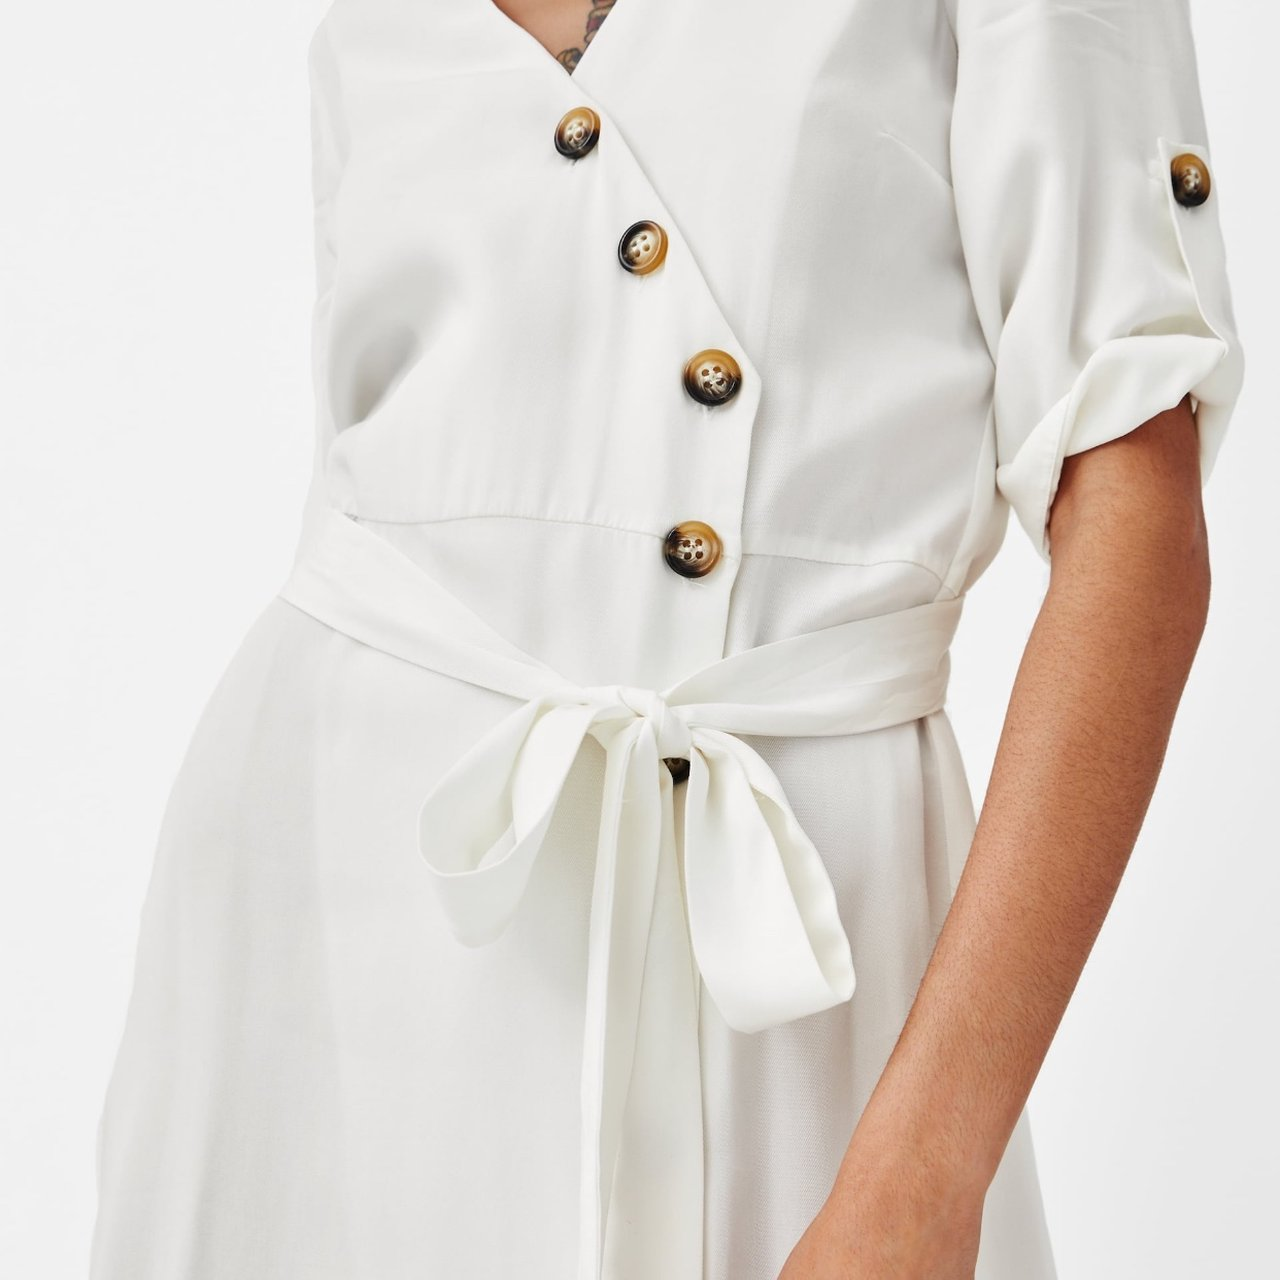 Zara New Collection White Button Down Dress New With Depop